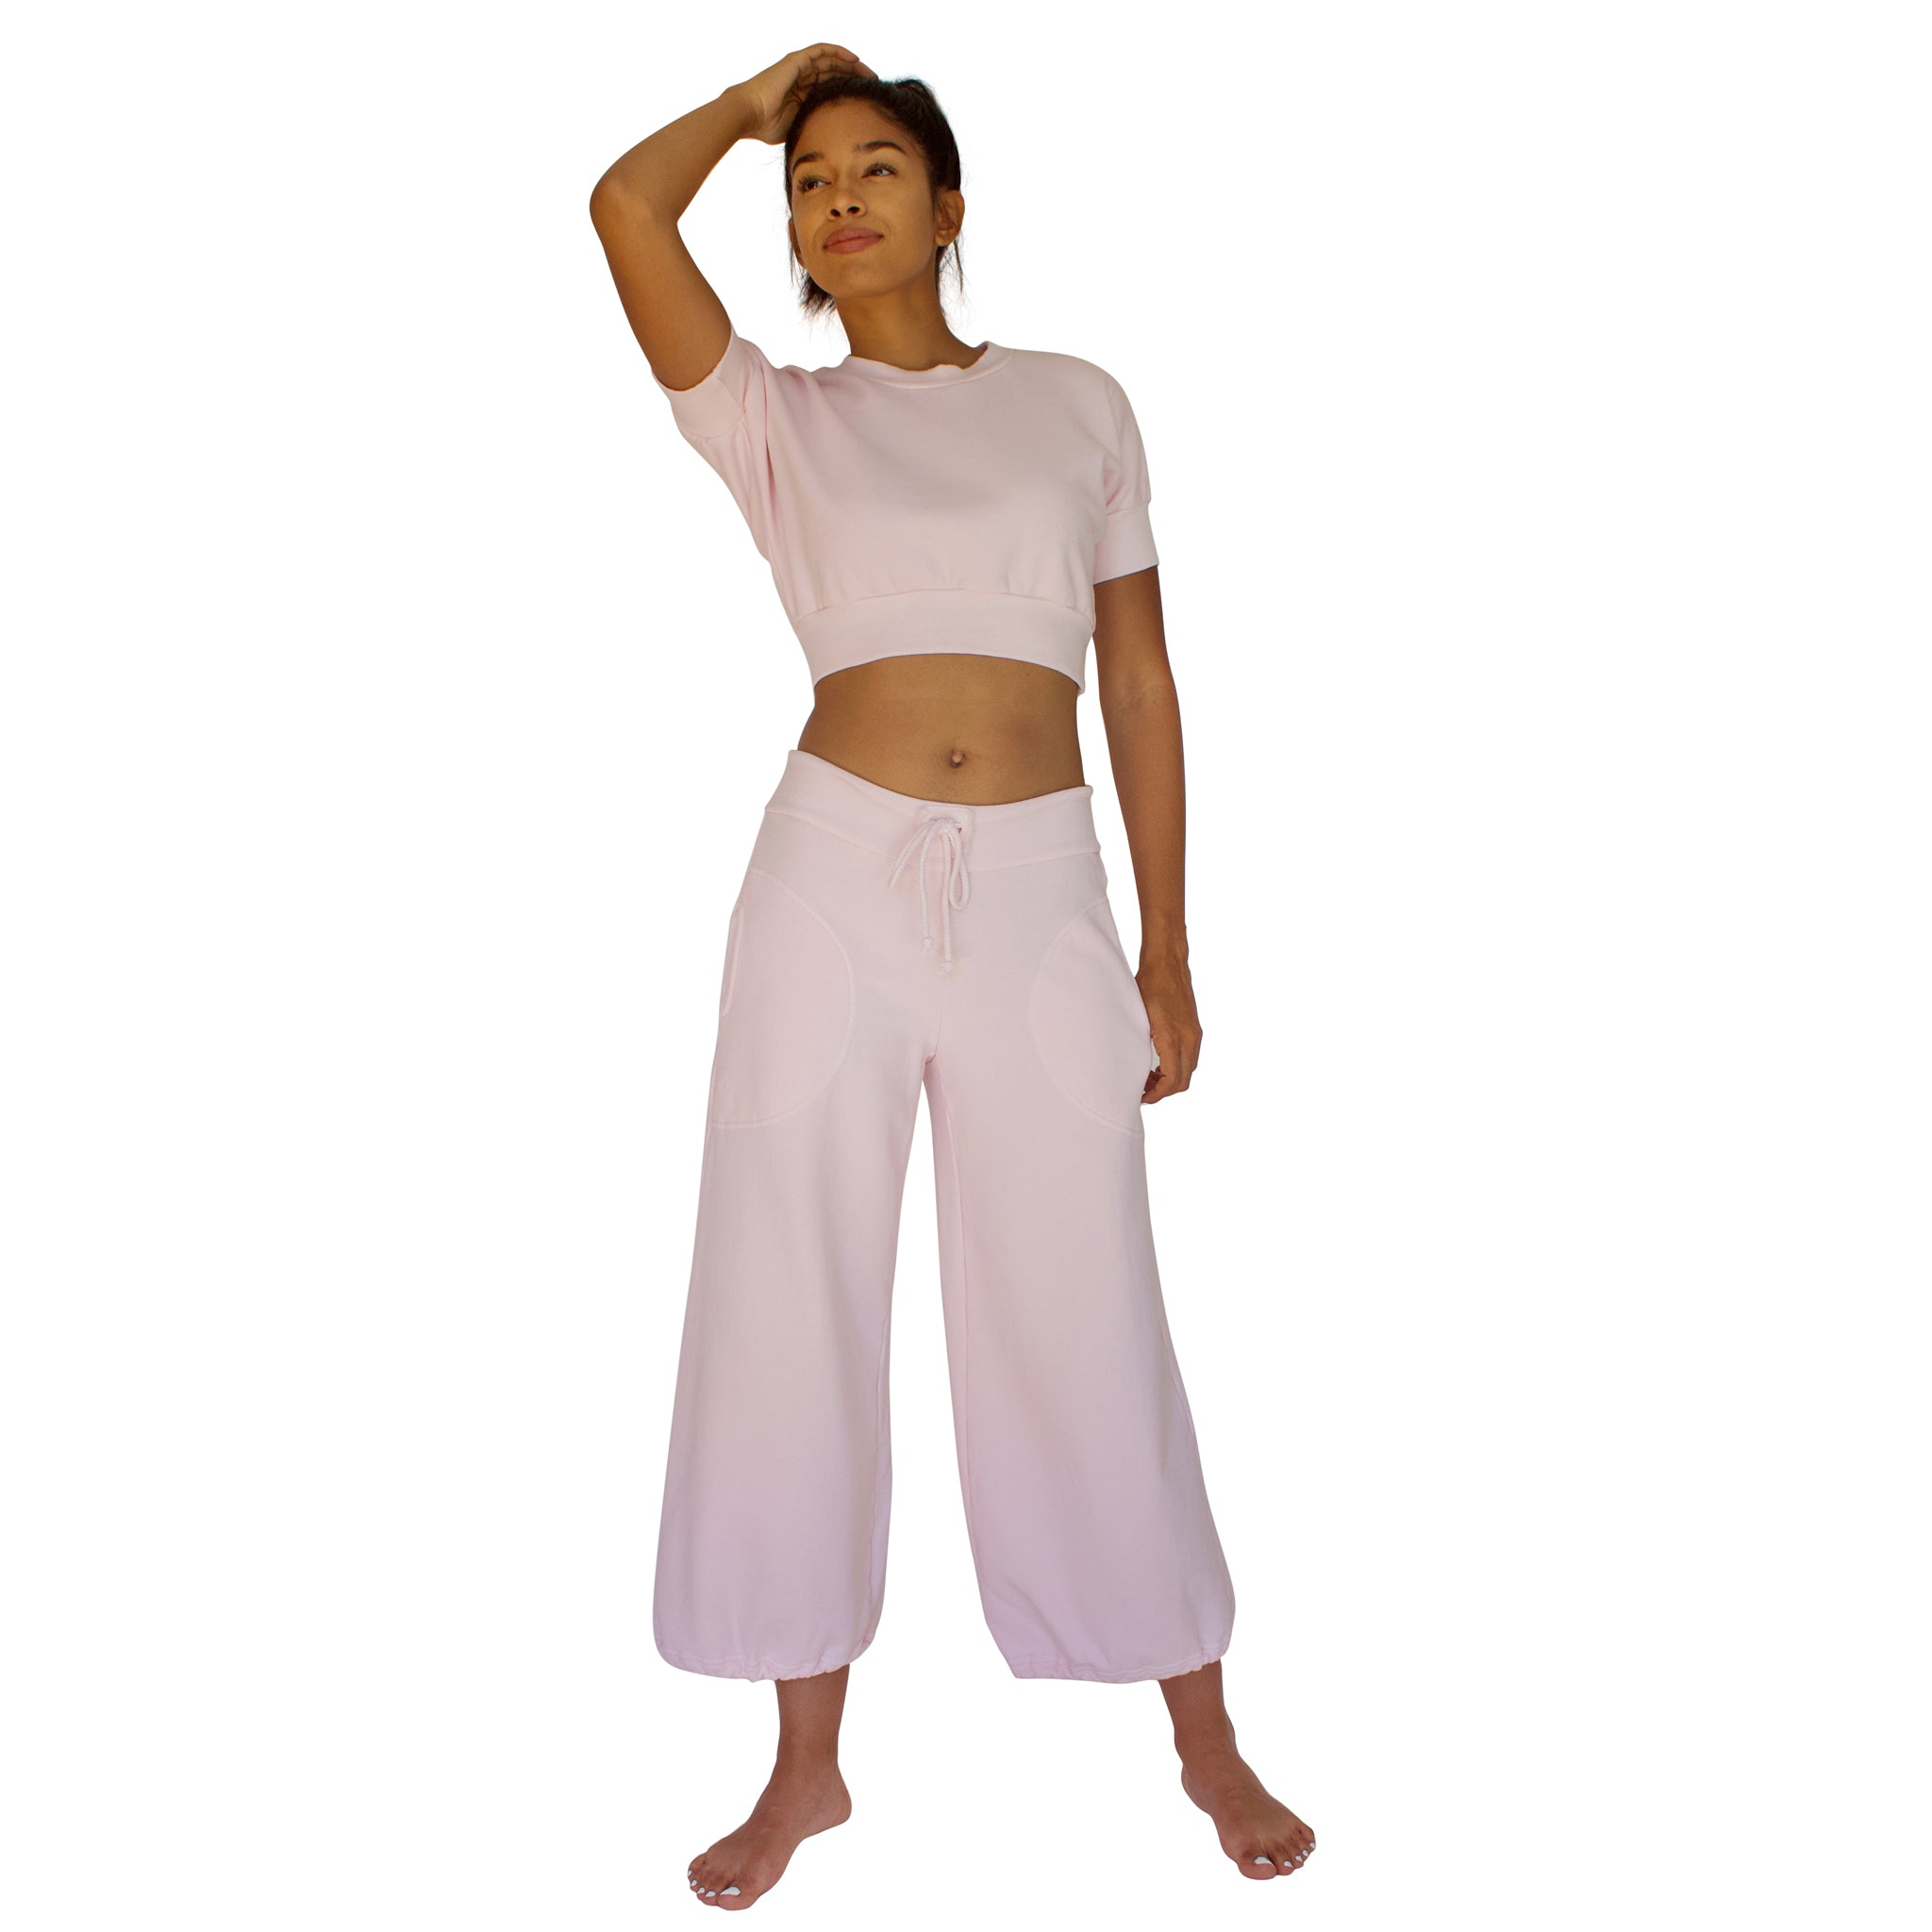 CC Beach Pant in 100% cotton French Terry will keep you comfy and cozy with roomy side seam pockets, drawstring waist, elasticized cuffs shown here in Candy Pink